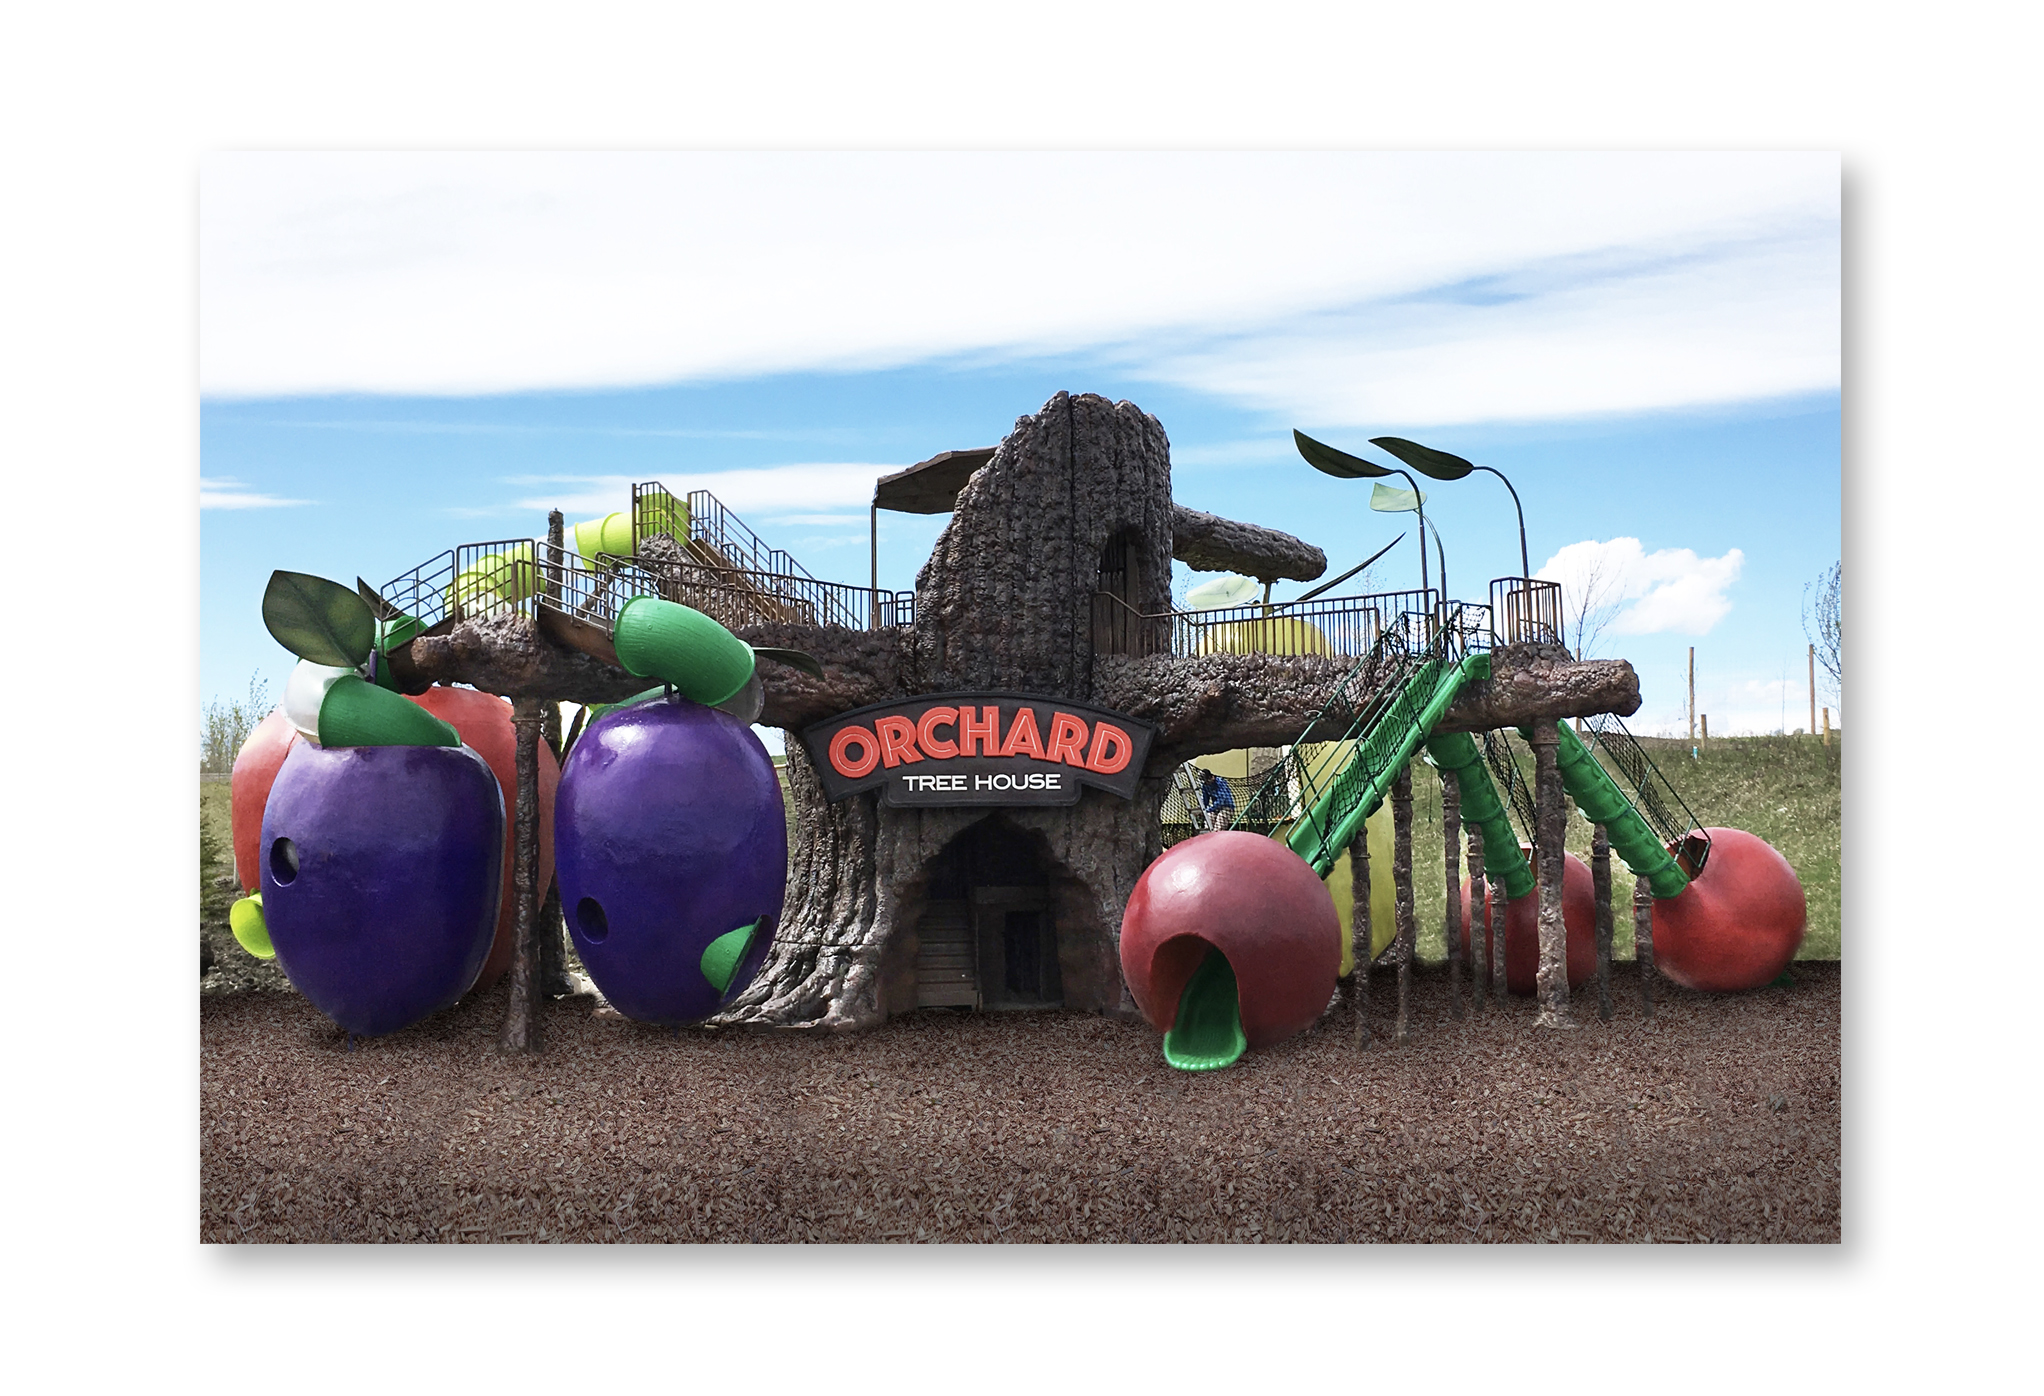 SEE MORE IMAGES OF THE GRANARY ROAD ACTIVE LEARNING PARK BY WHOVILLE